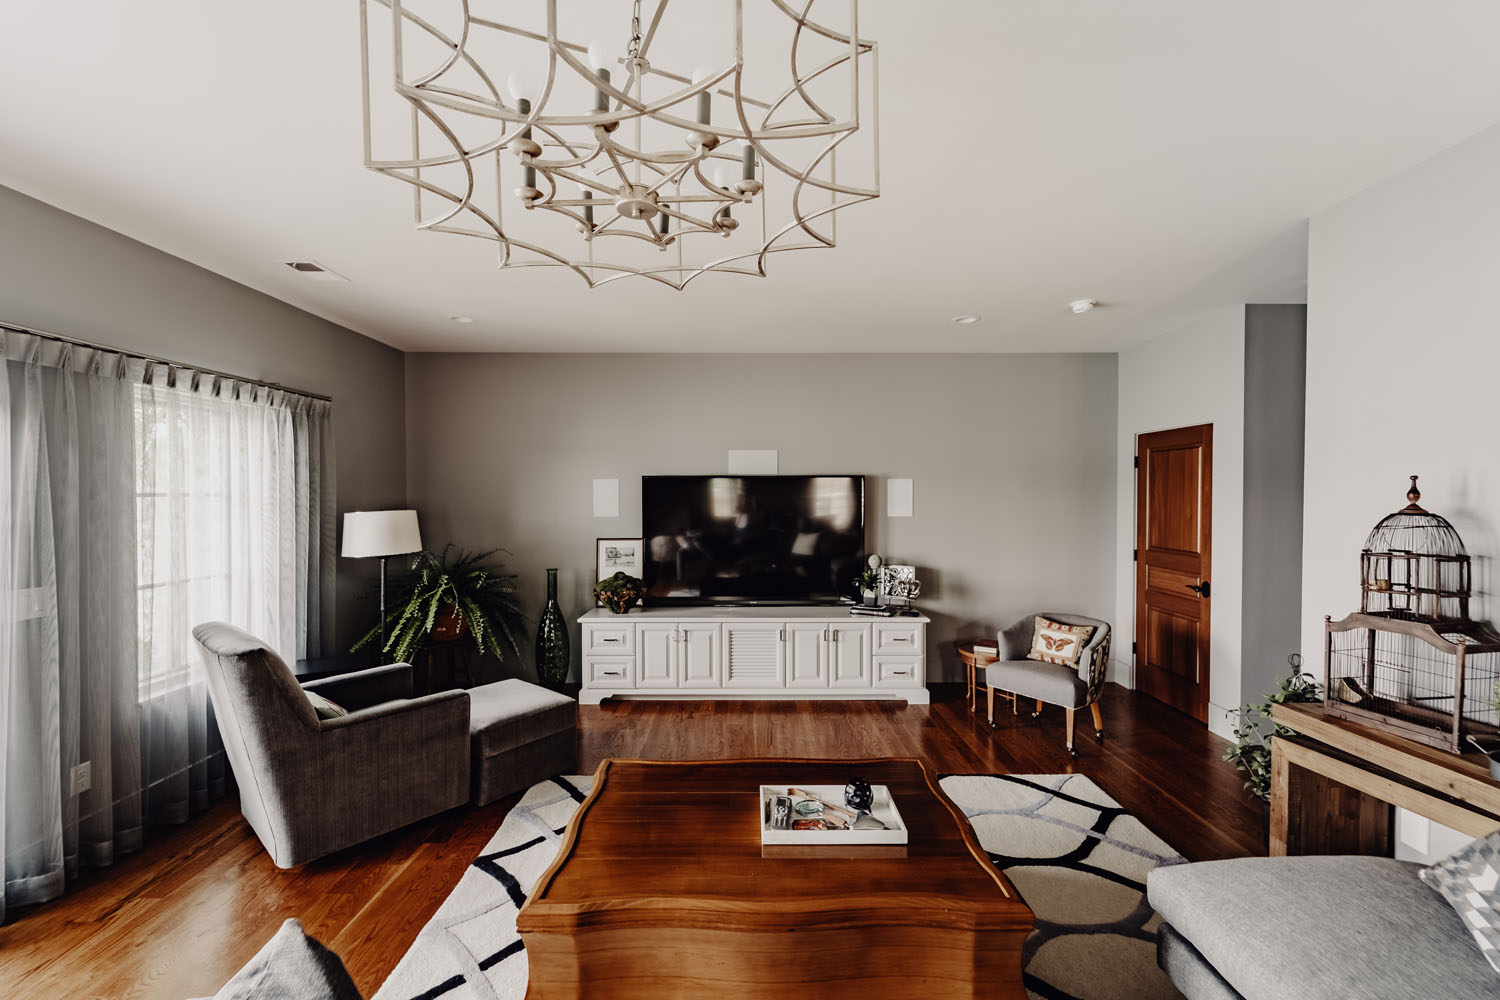 Custom-built living room with fine furnishings and hardwood floors by LA Construction.